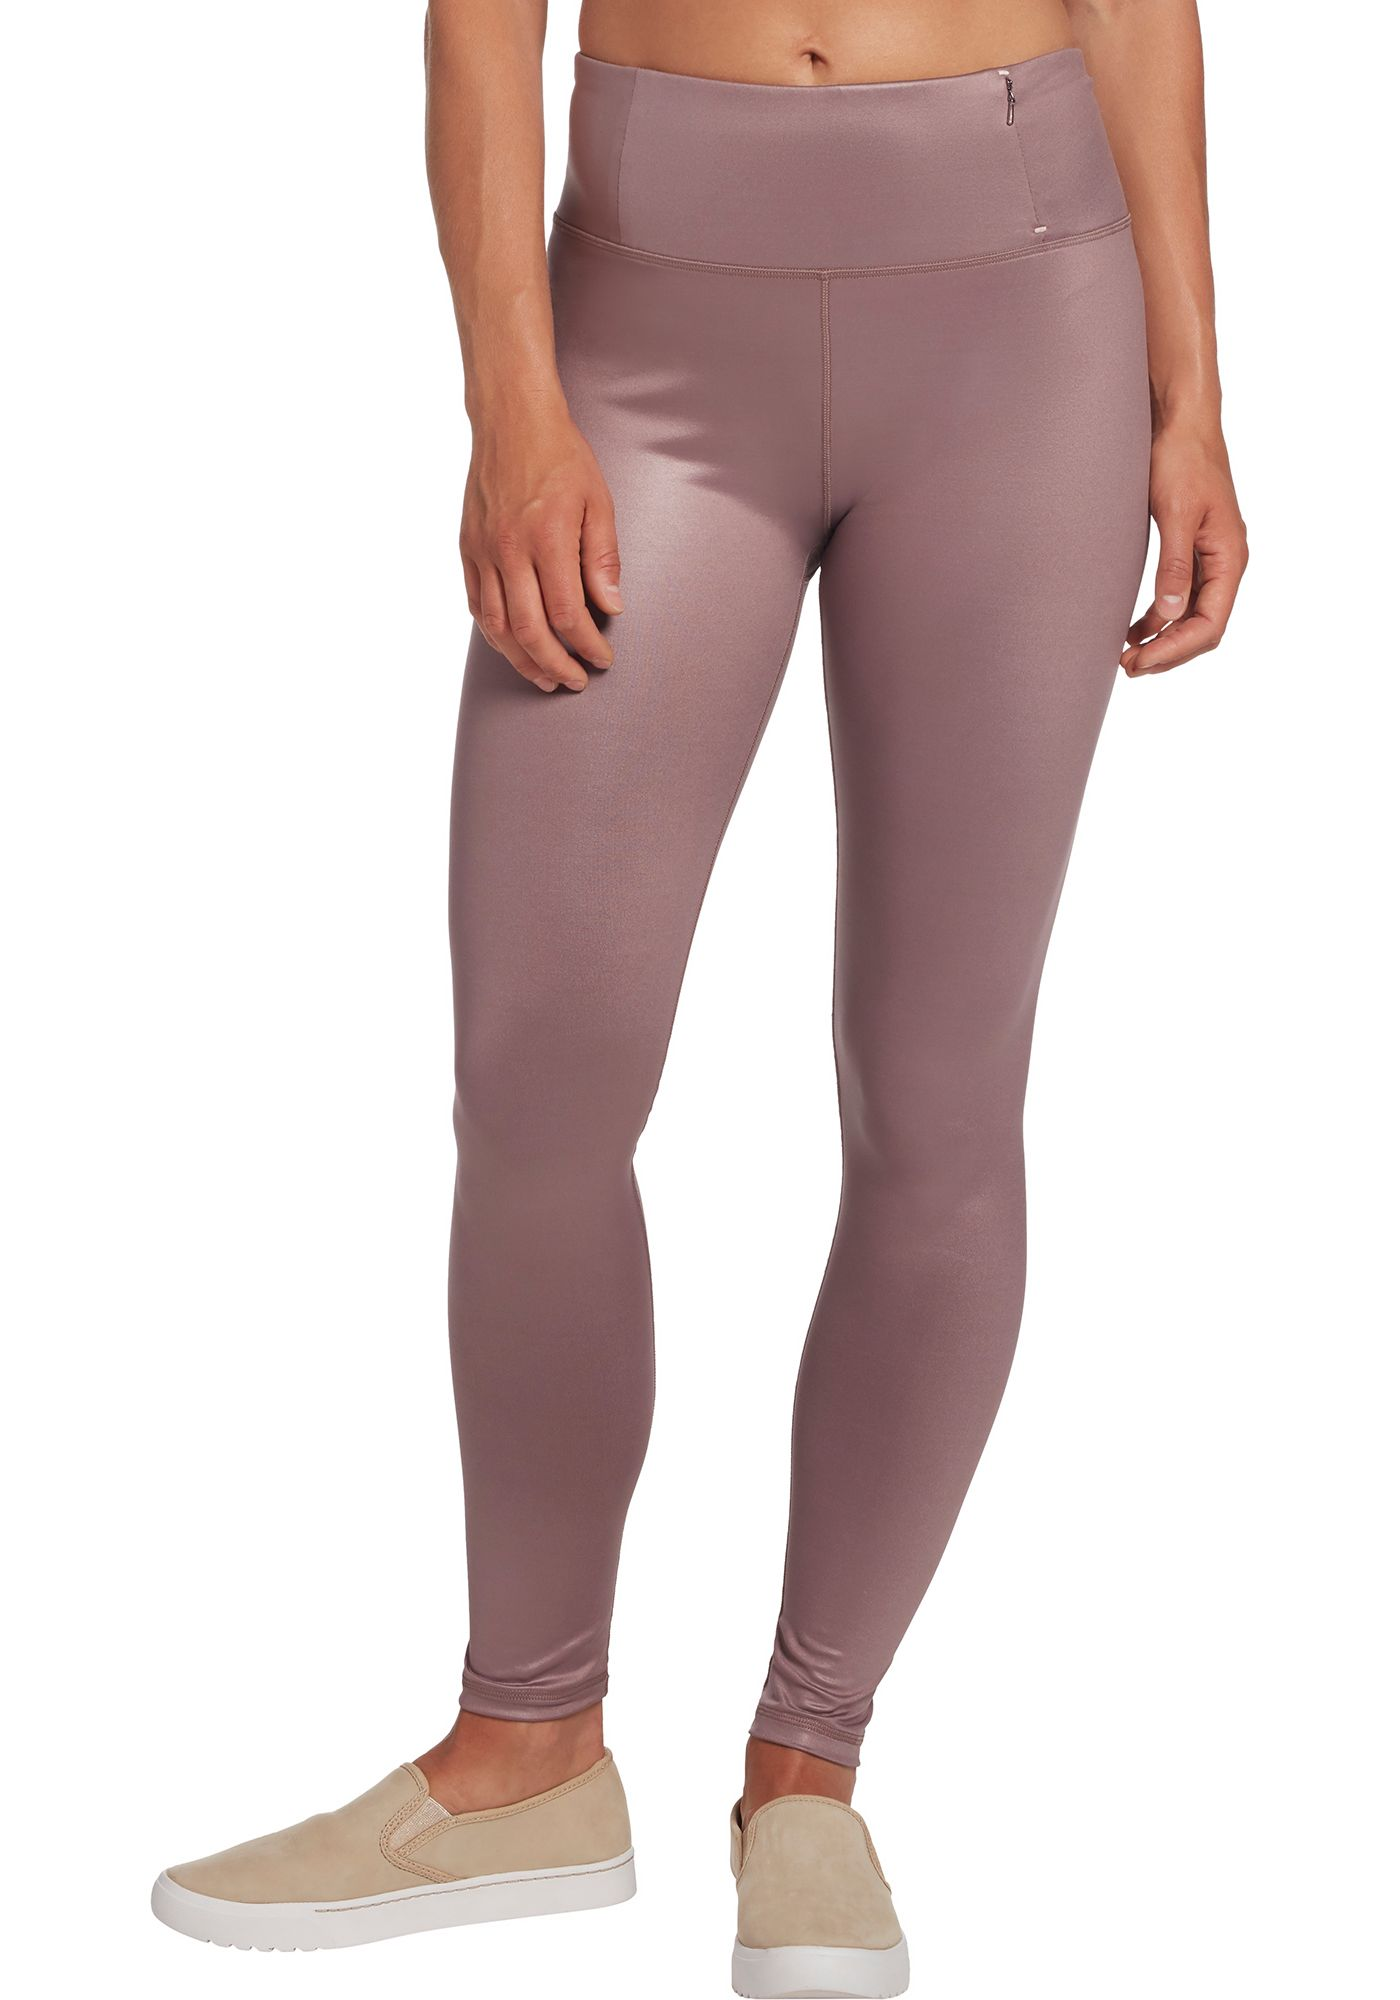 CALIA by Carrie Underwood Women's Essential Shine Leggings